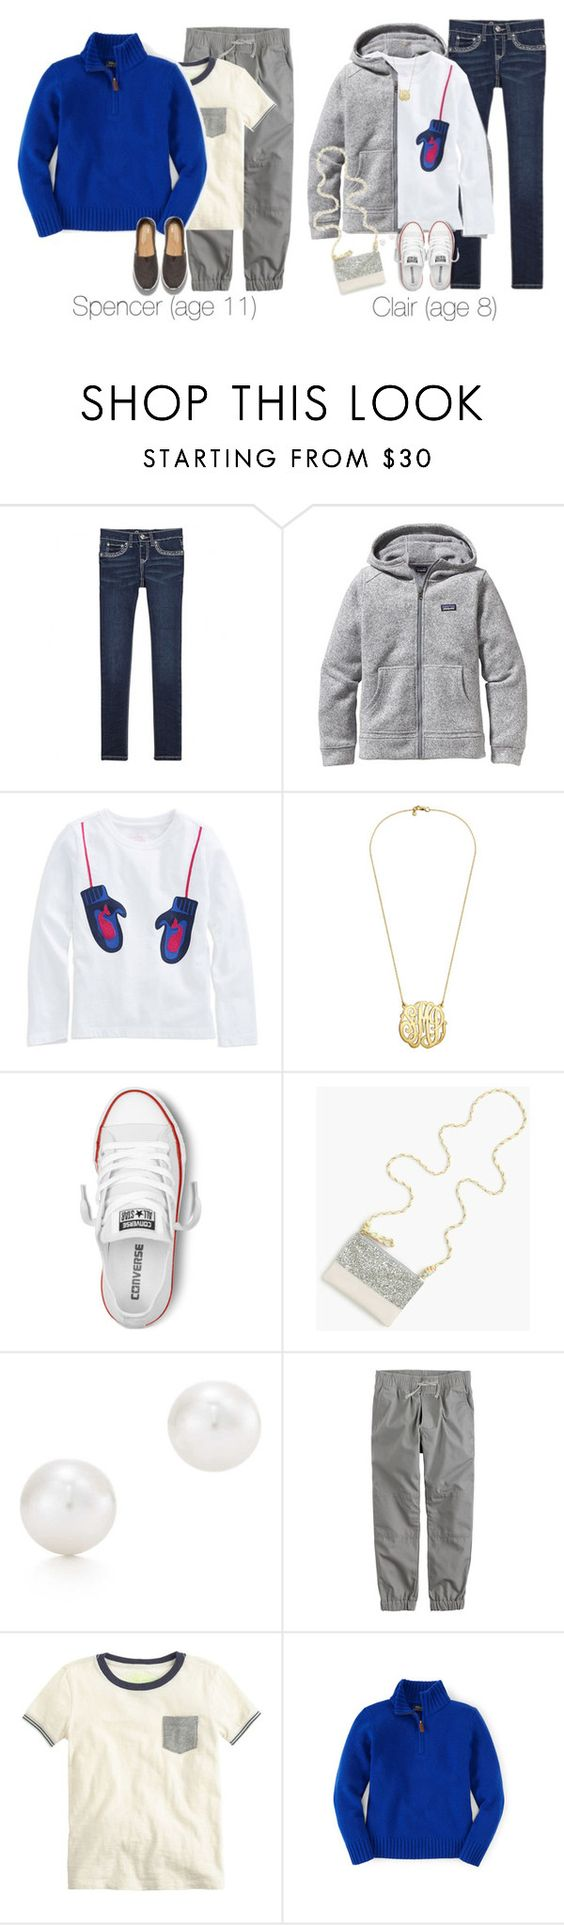 """""""A Tuesday In December: Cleaning House and IHOP"""" by teamboby ❤ liked on Polyvore featuring Patagonia, Converse, J.Crew, Tiffany & Co., TOMS, Girls, boys and kids"""